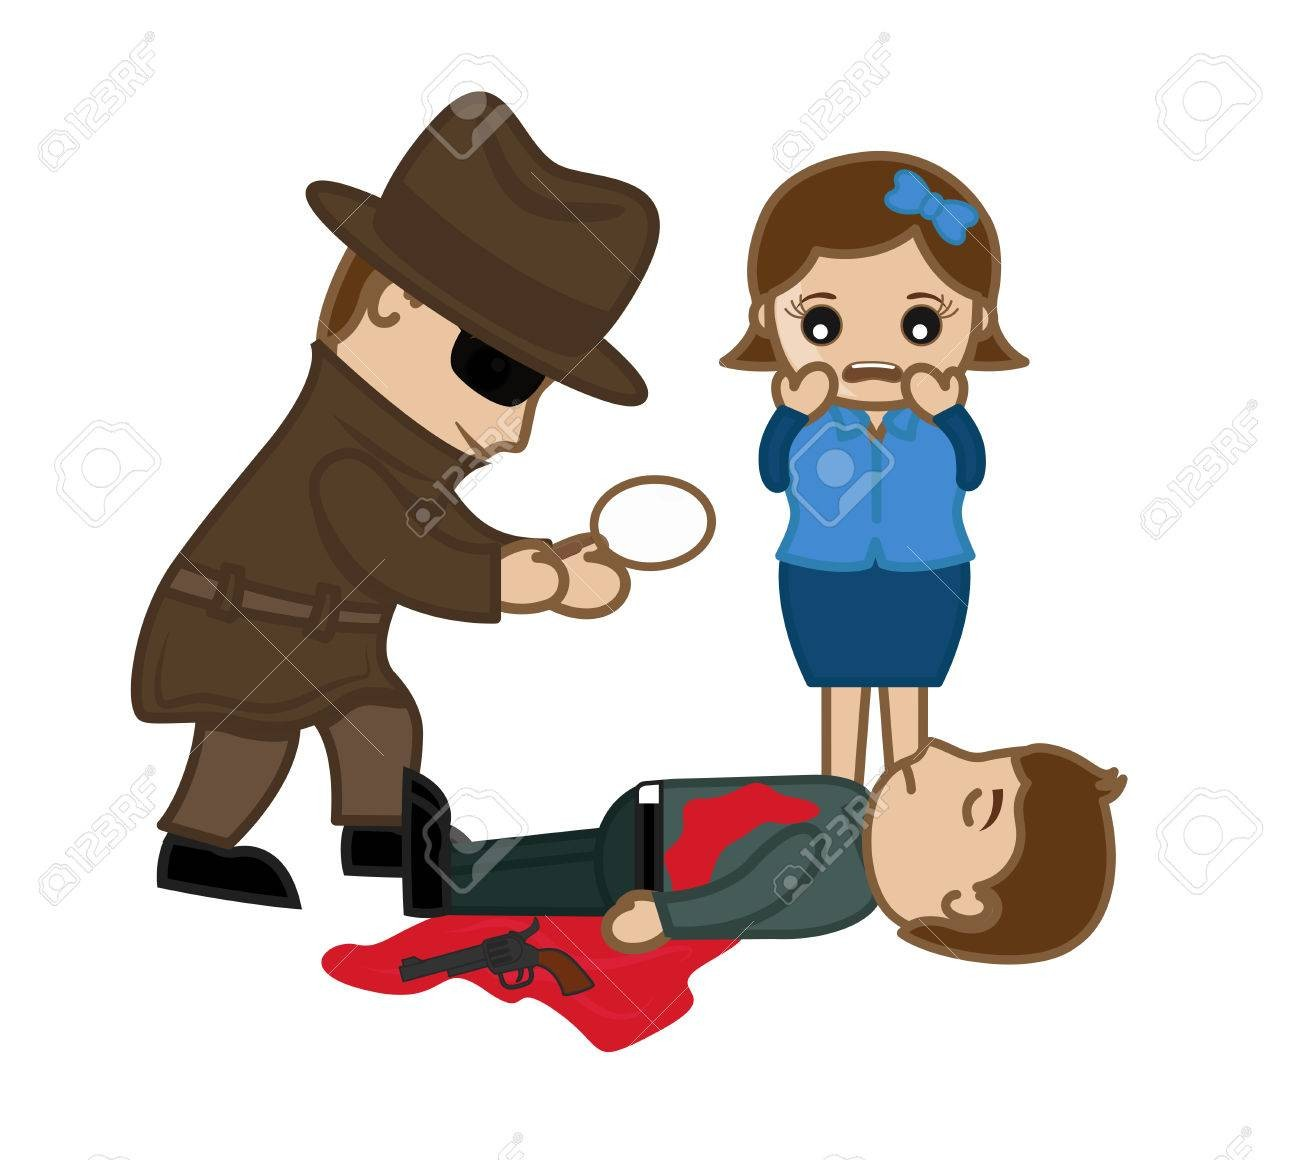 On Dead Body Clipart 64173774 Girl Shocked And Detective Agent.